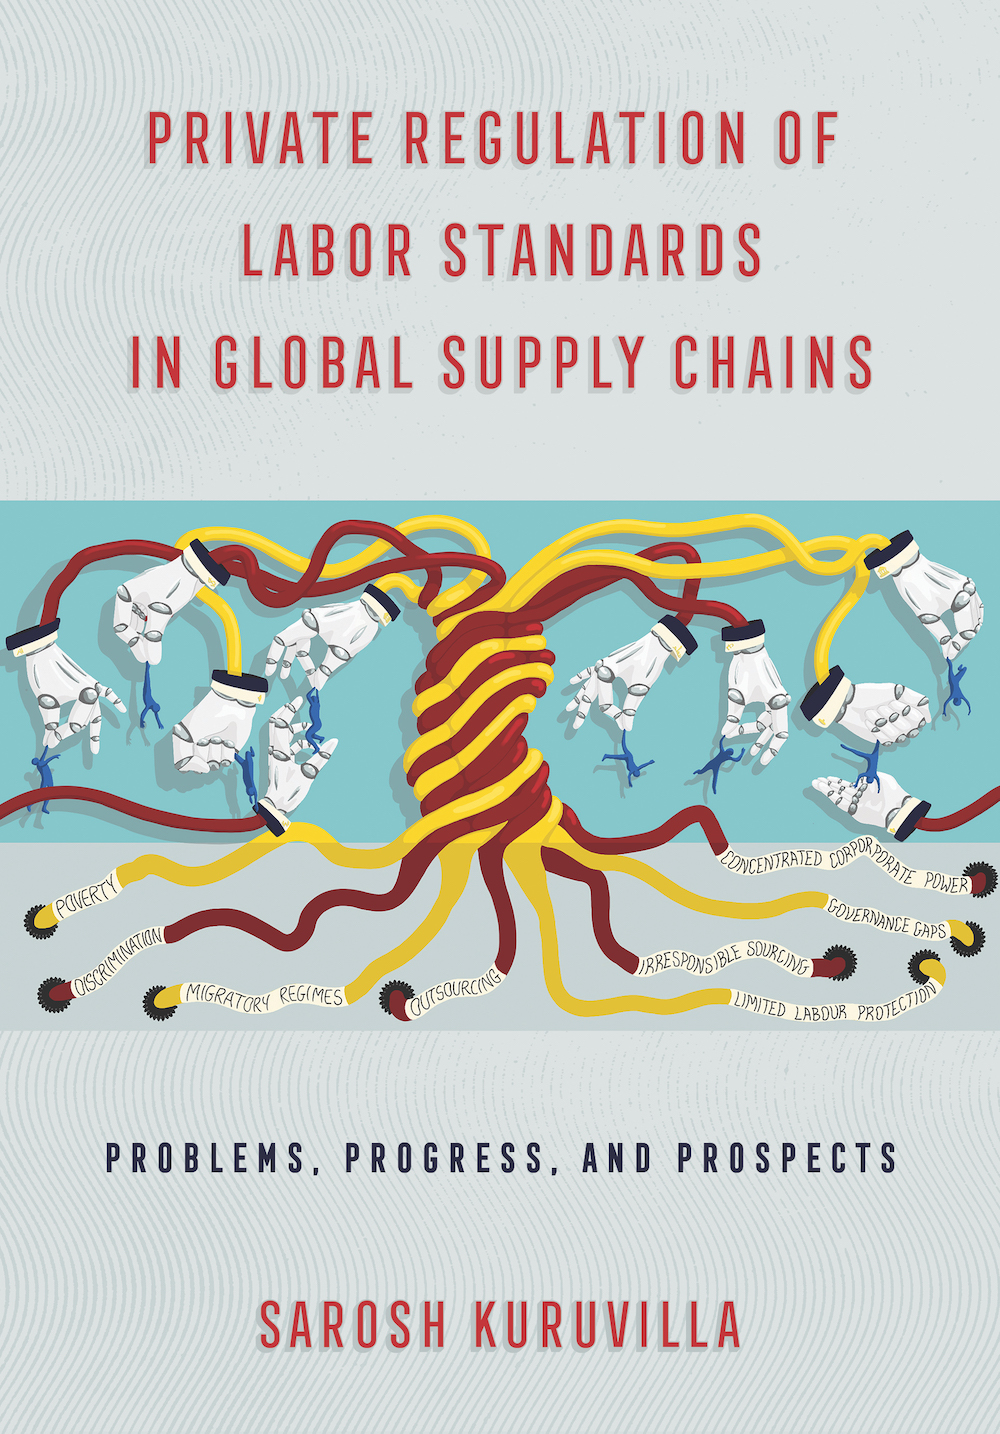 """Sarosh Kuruvilla's book """"Private Regulation of Labor Standards in Global Supply Chains"""" analyzes data to identify problems and solutions."""